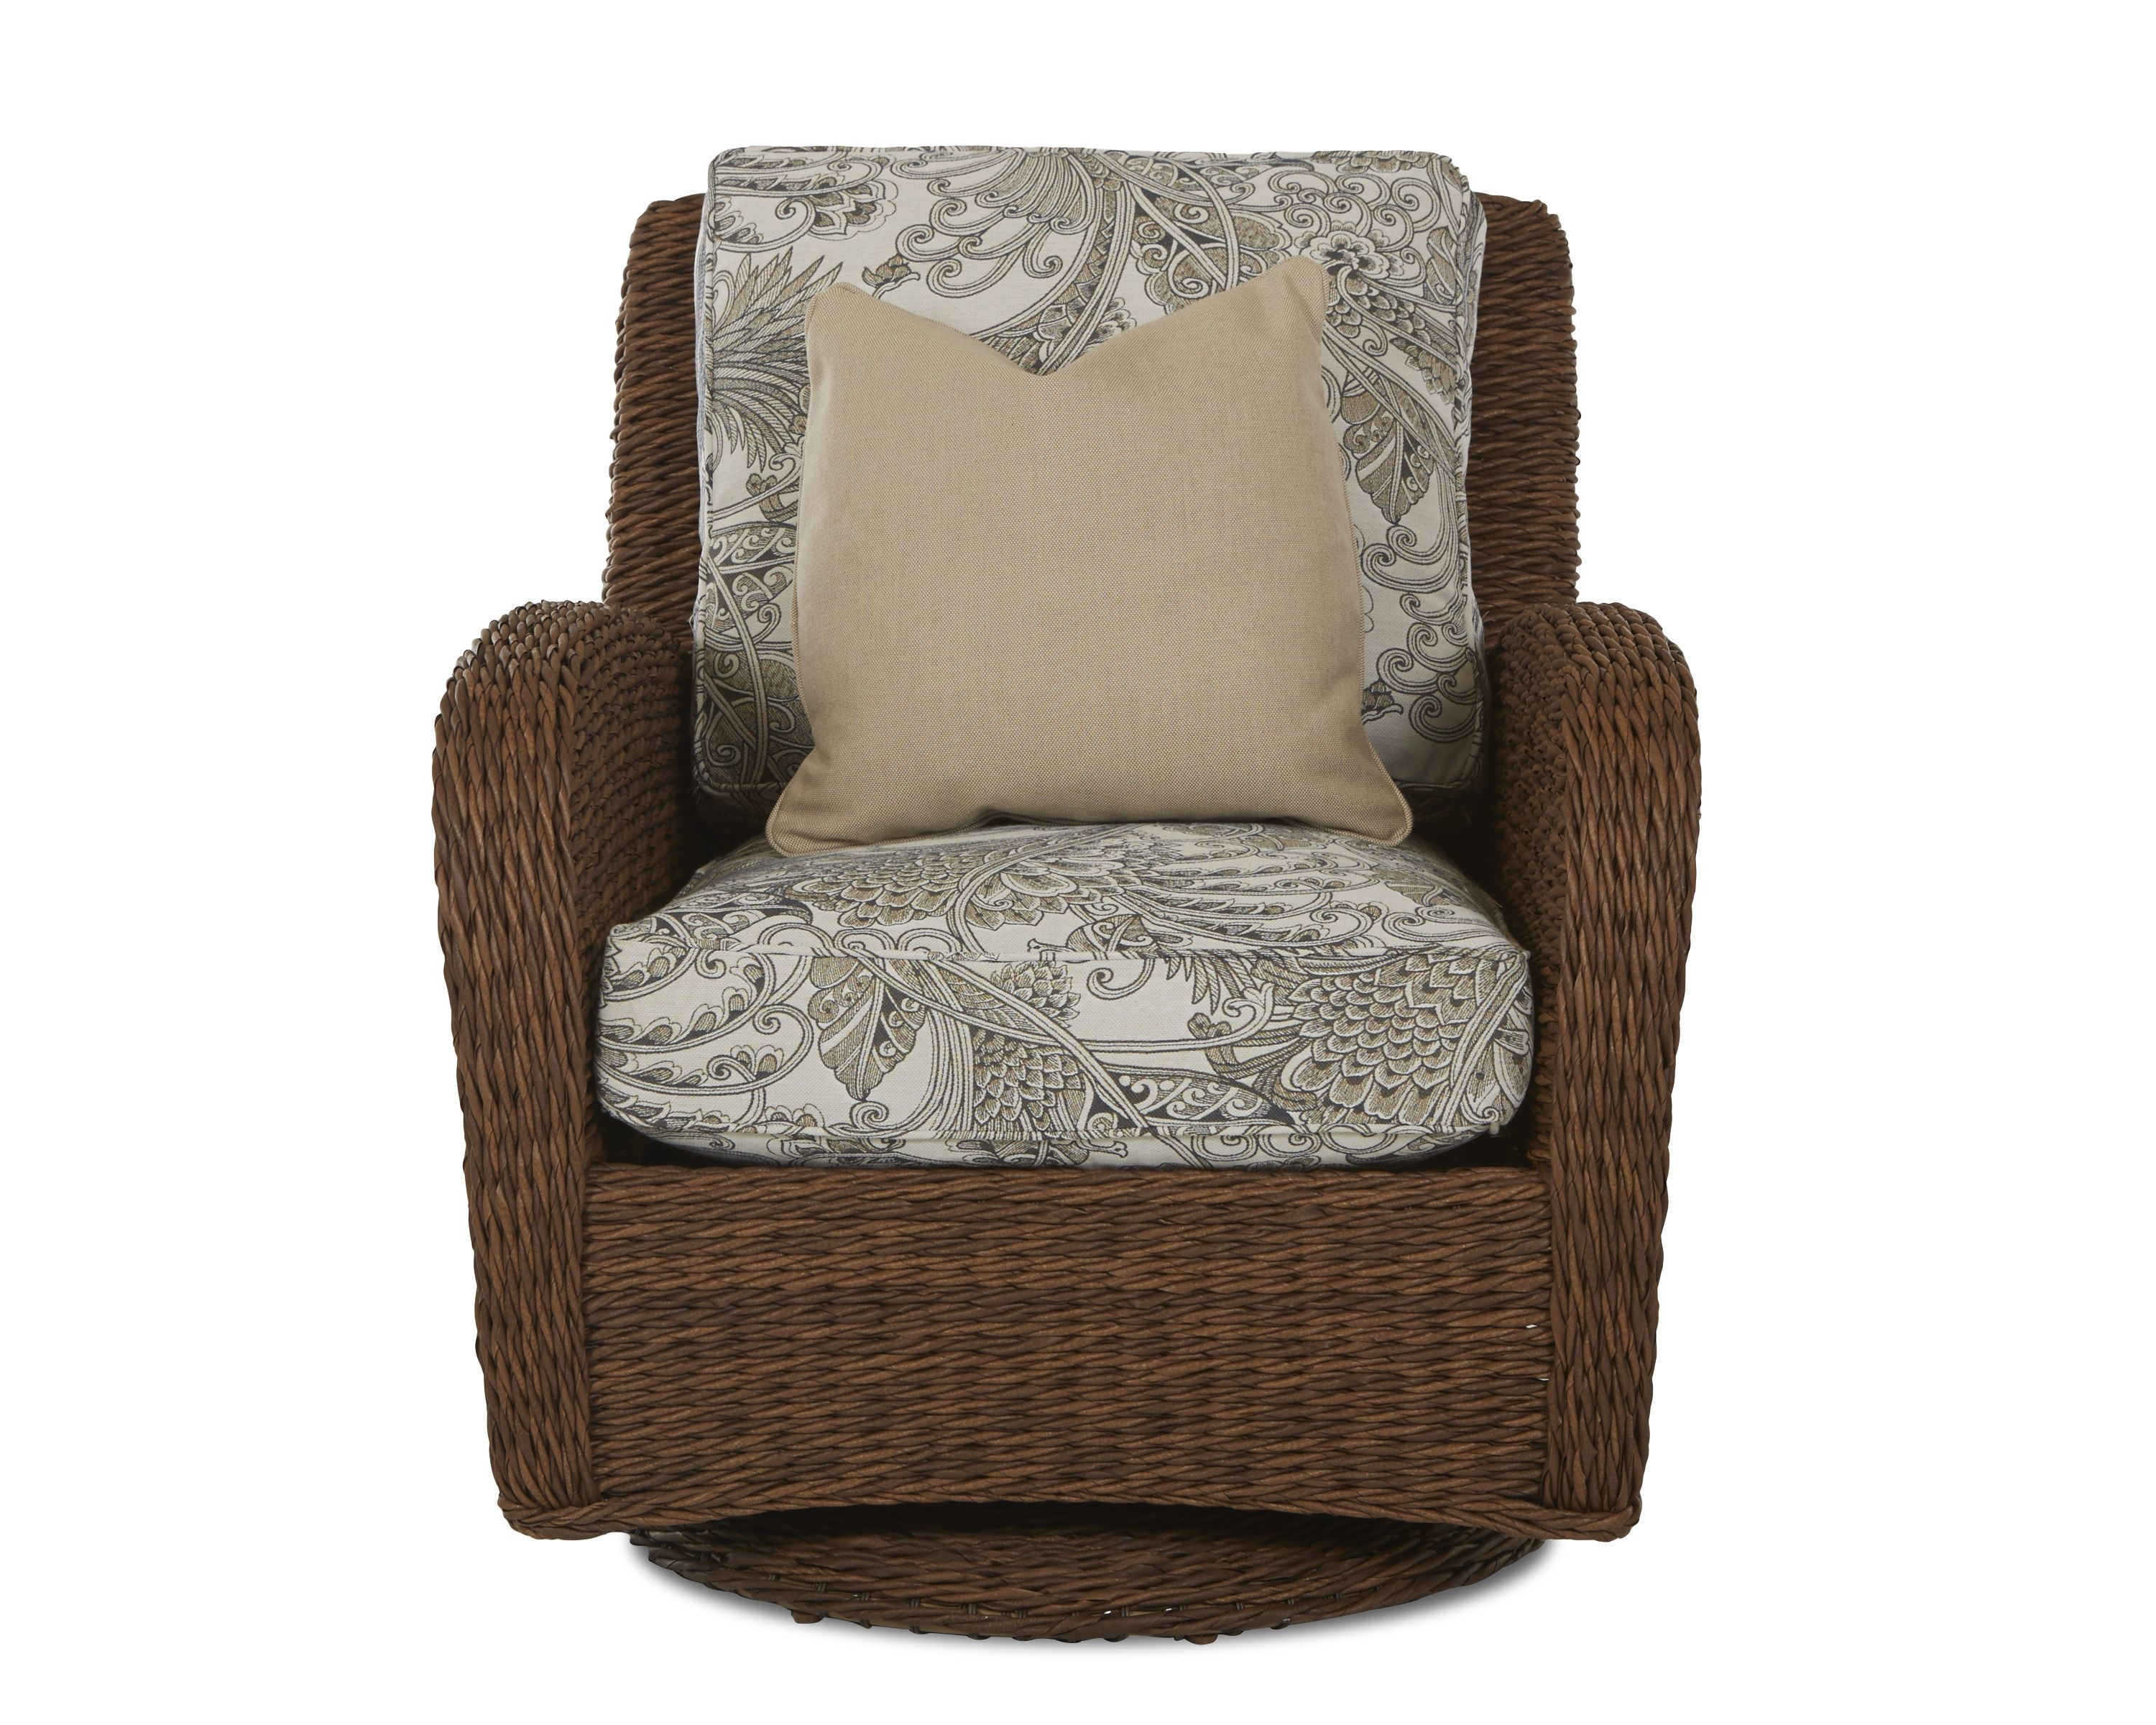 Klaussner Outdoor Outdoor/Patio Palmetto Swivel Glider Chair W1400 SGC - Klaussner Outdoor - Asheboro, NC